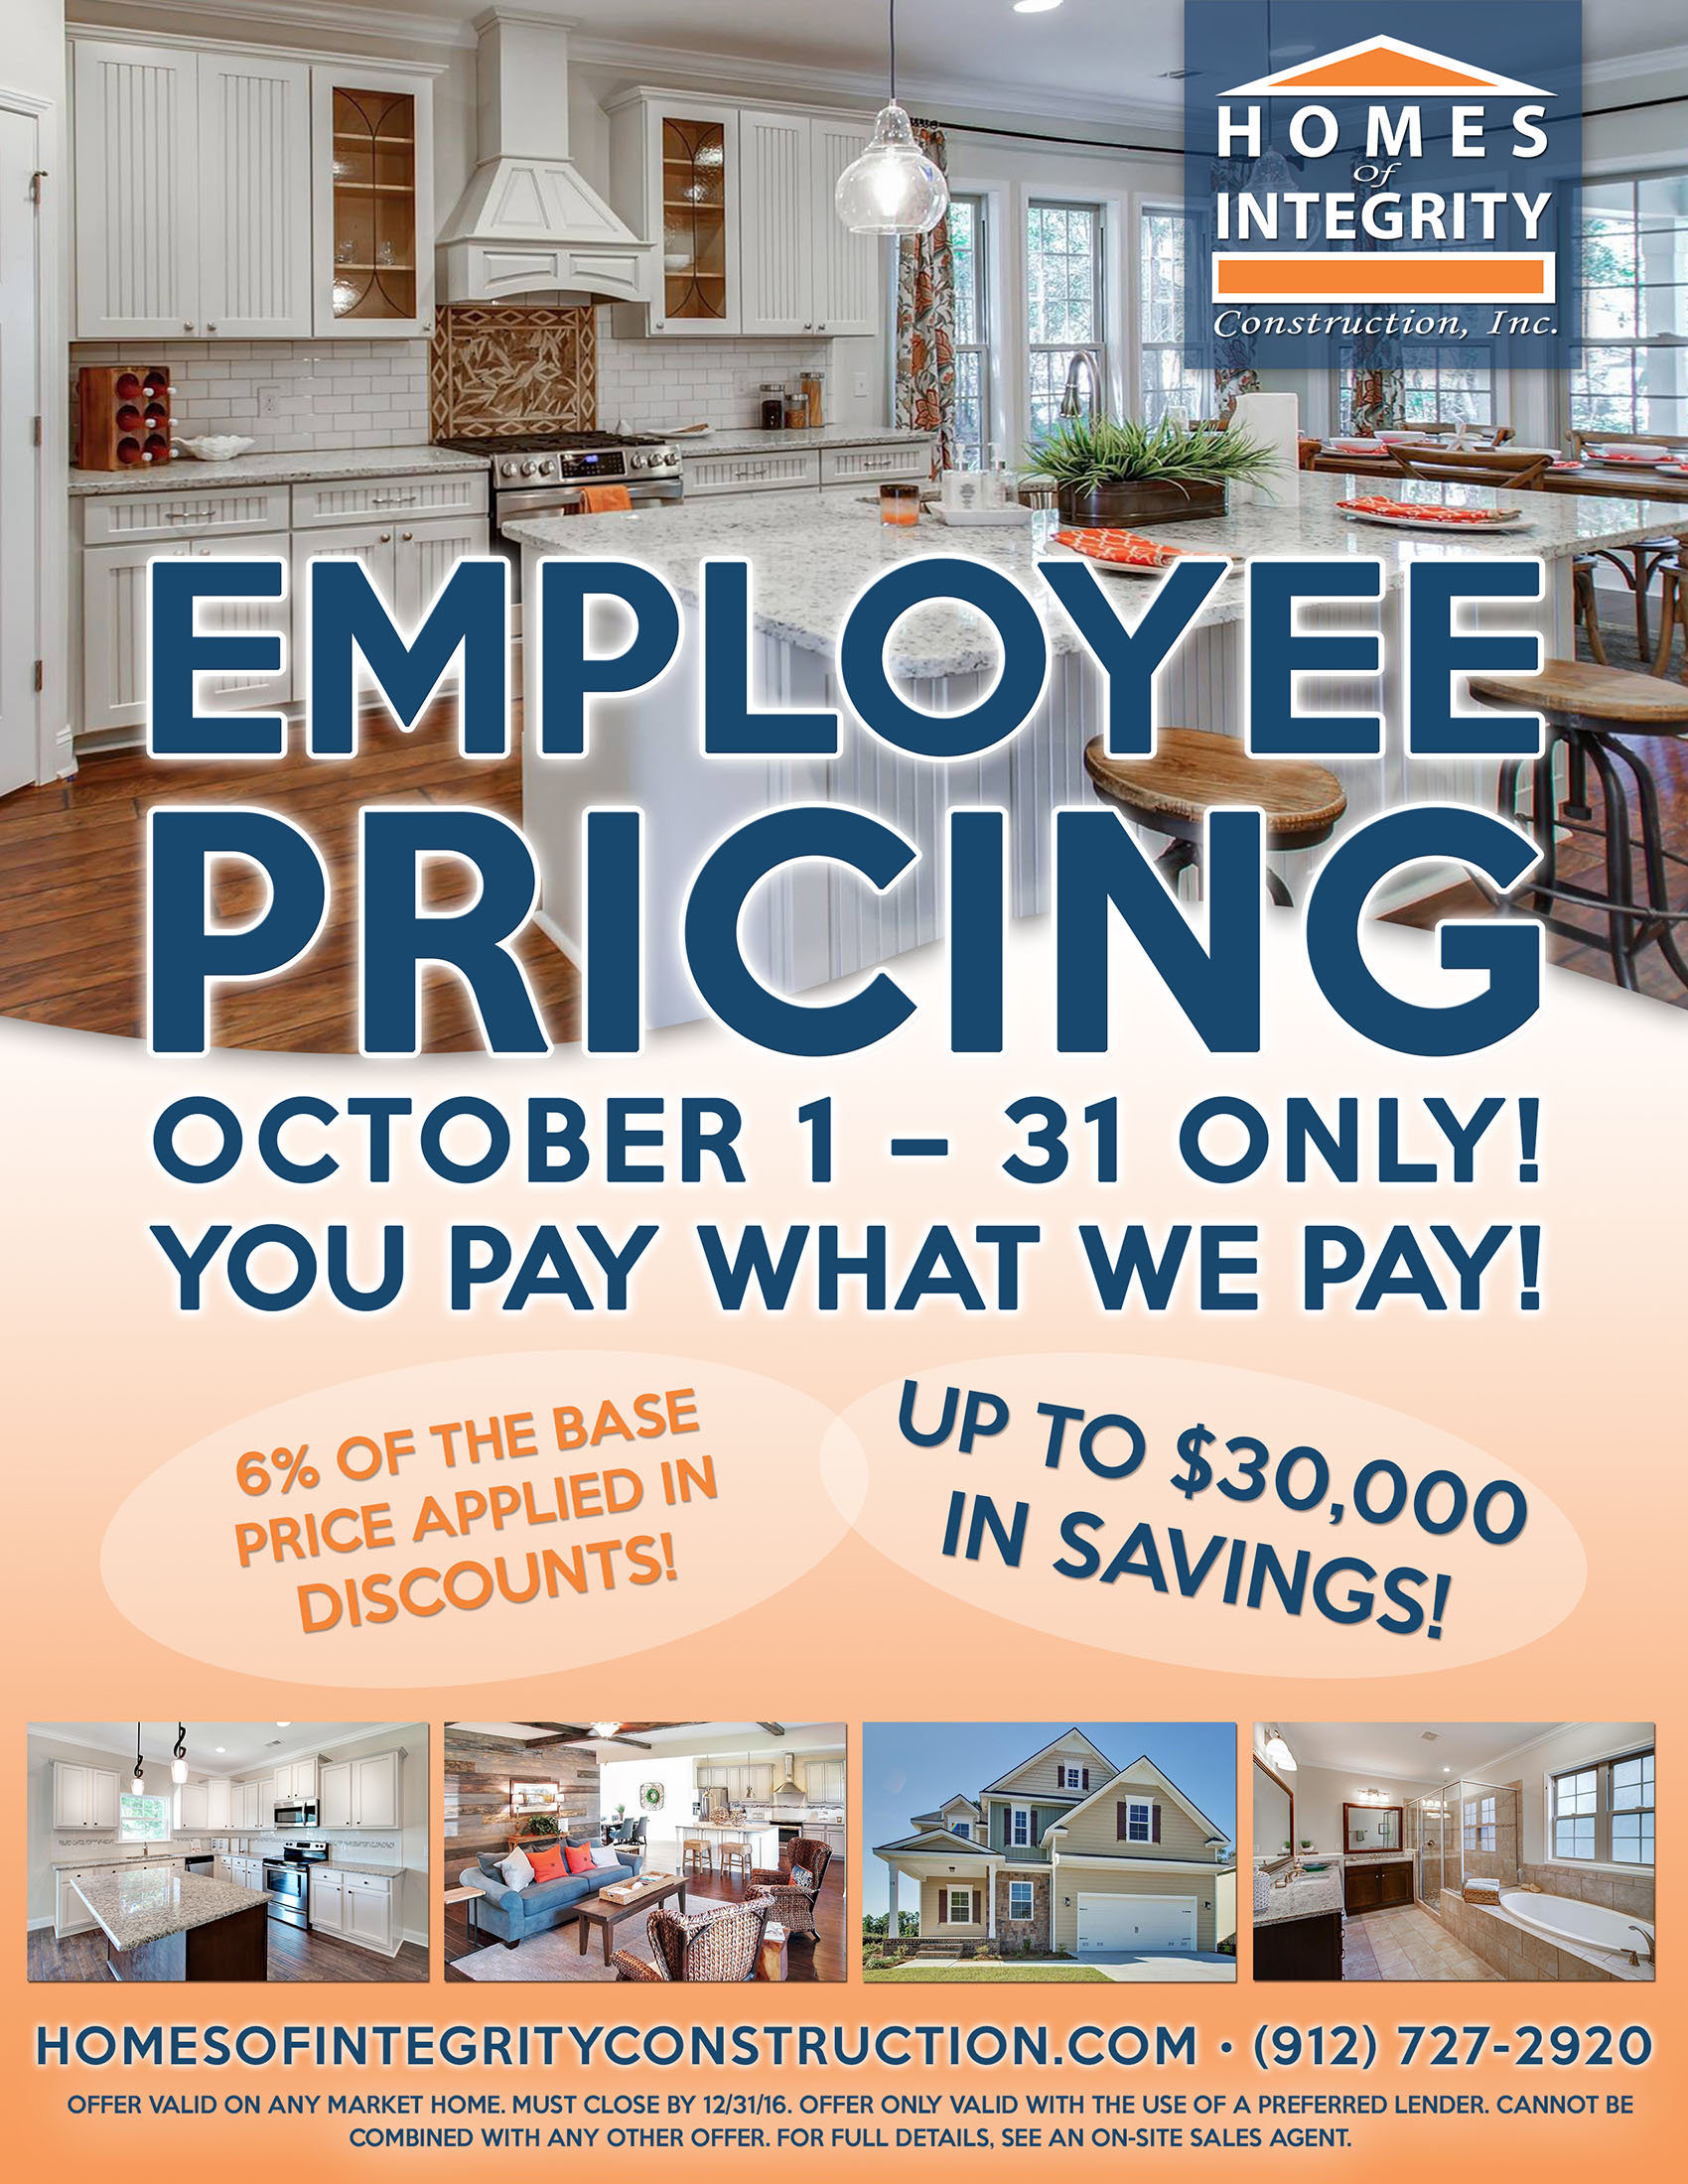 Employee Pricing – You Pay What We Pay!